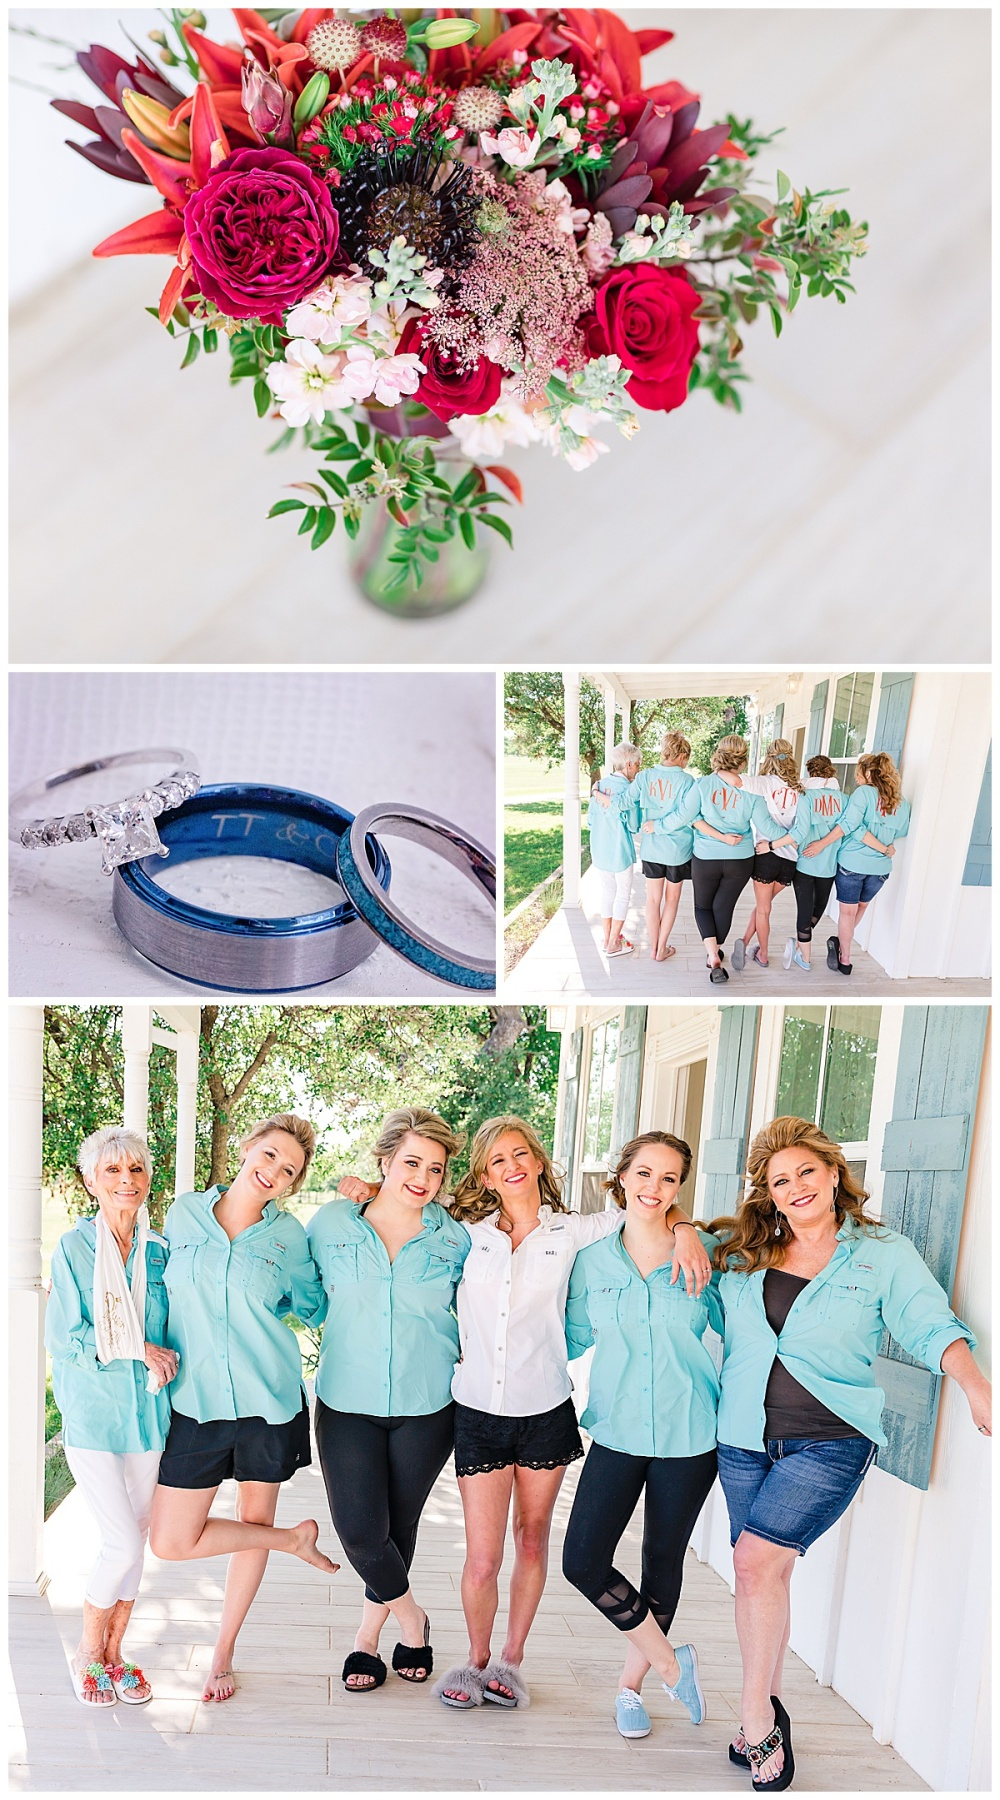 Eagle-Dancer-Ranch-Boerne-Texas-Wedding-Party-Barn-Carly-Barton-Photography_0015.jpg